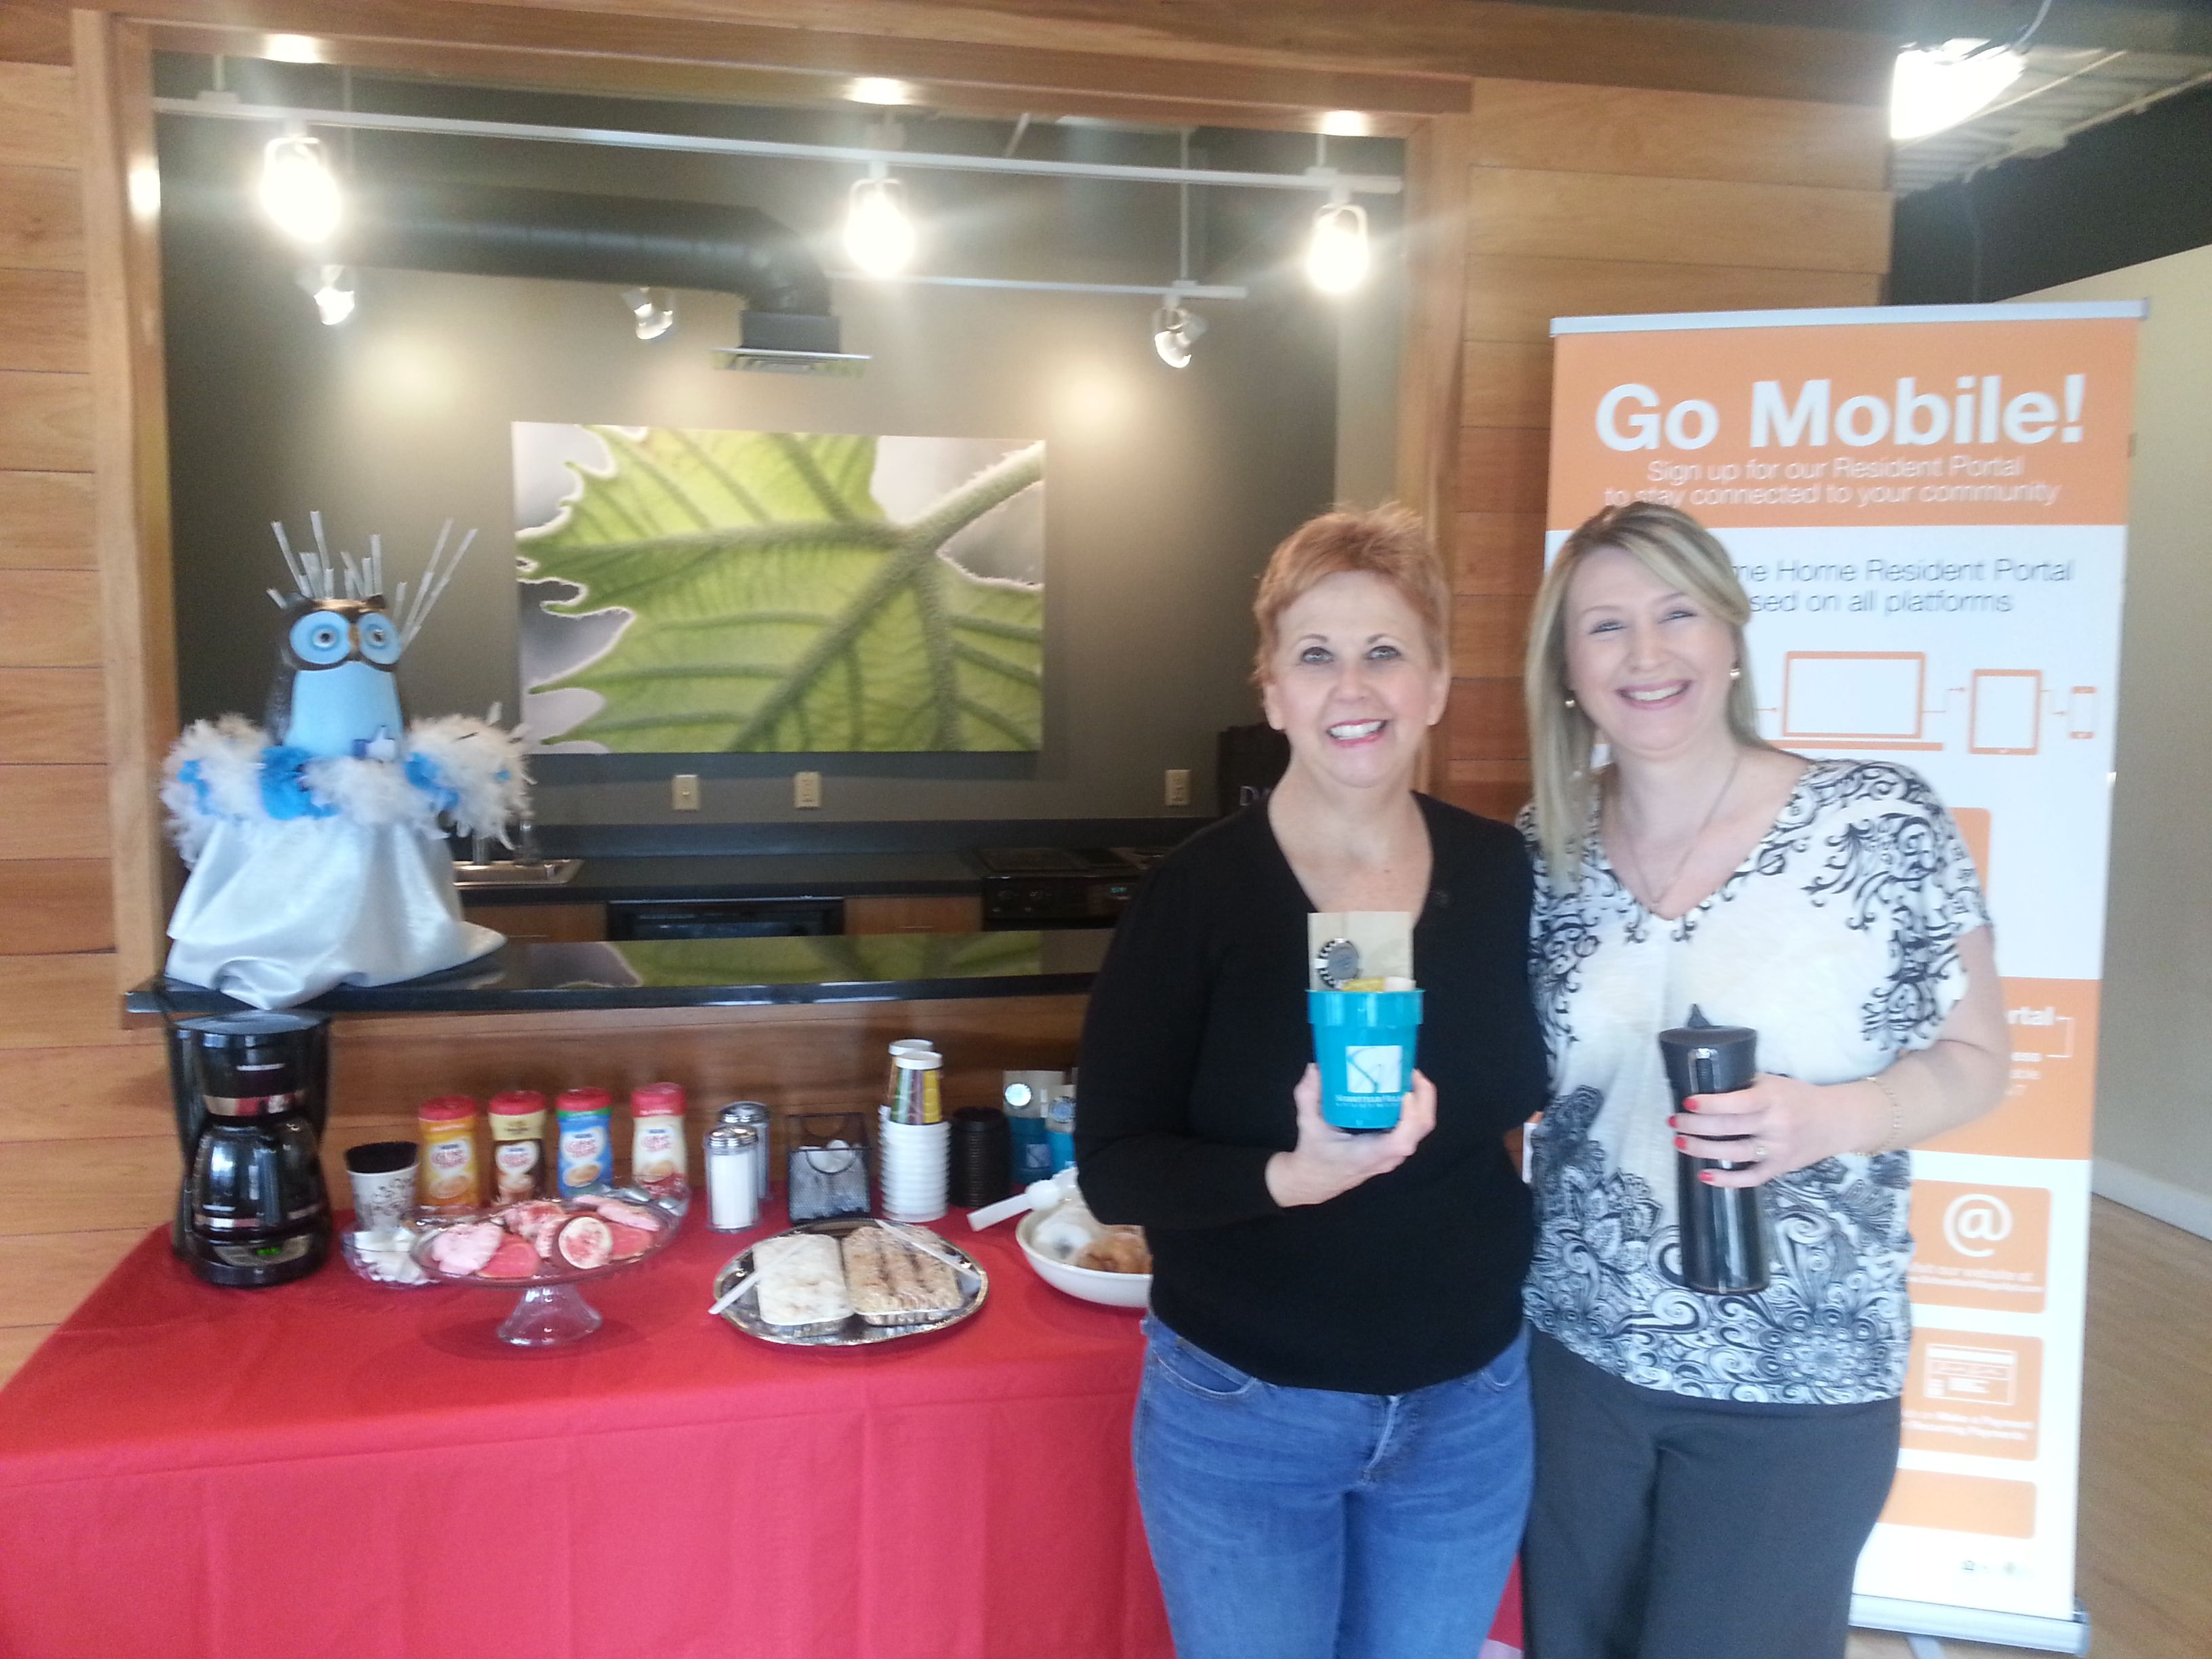 #1 out 10 residents who received a Starbuck's gift card and Dare 2 Care Cup filled with additional goodies!